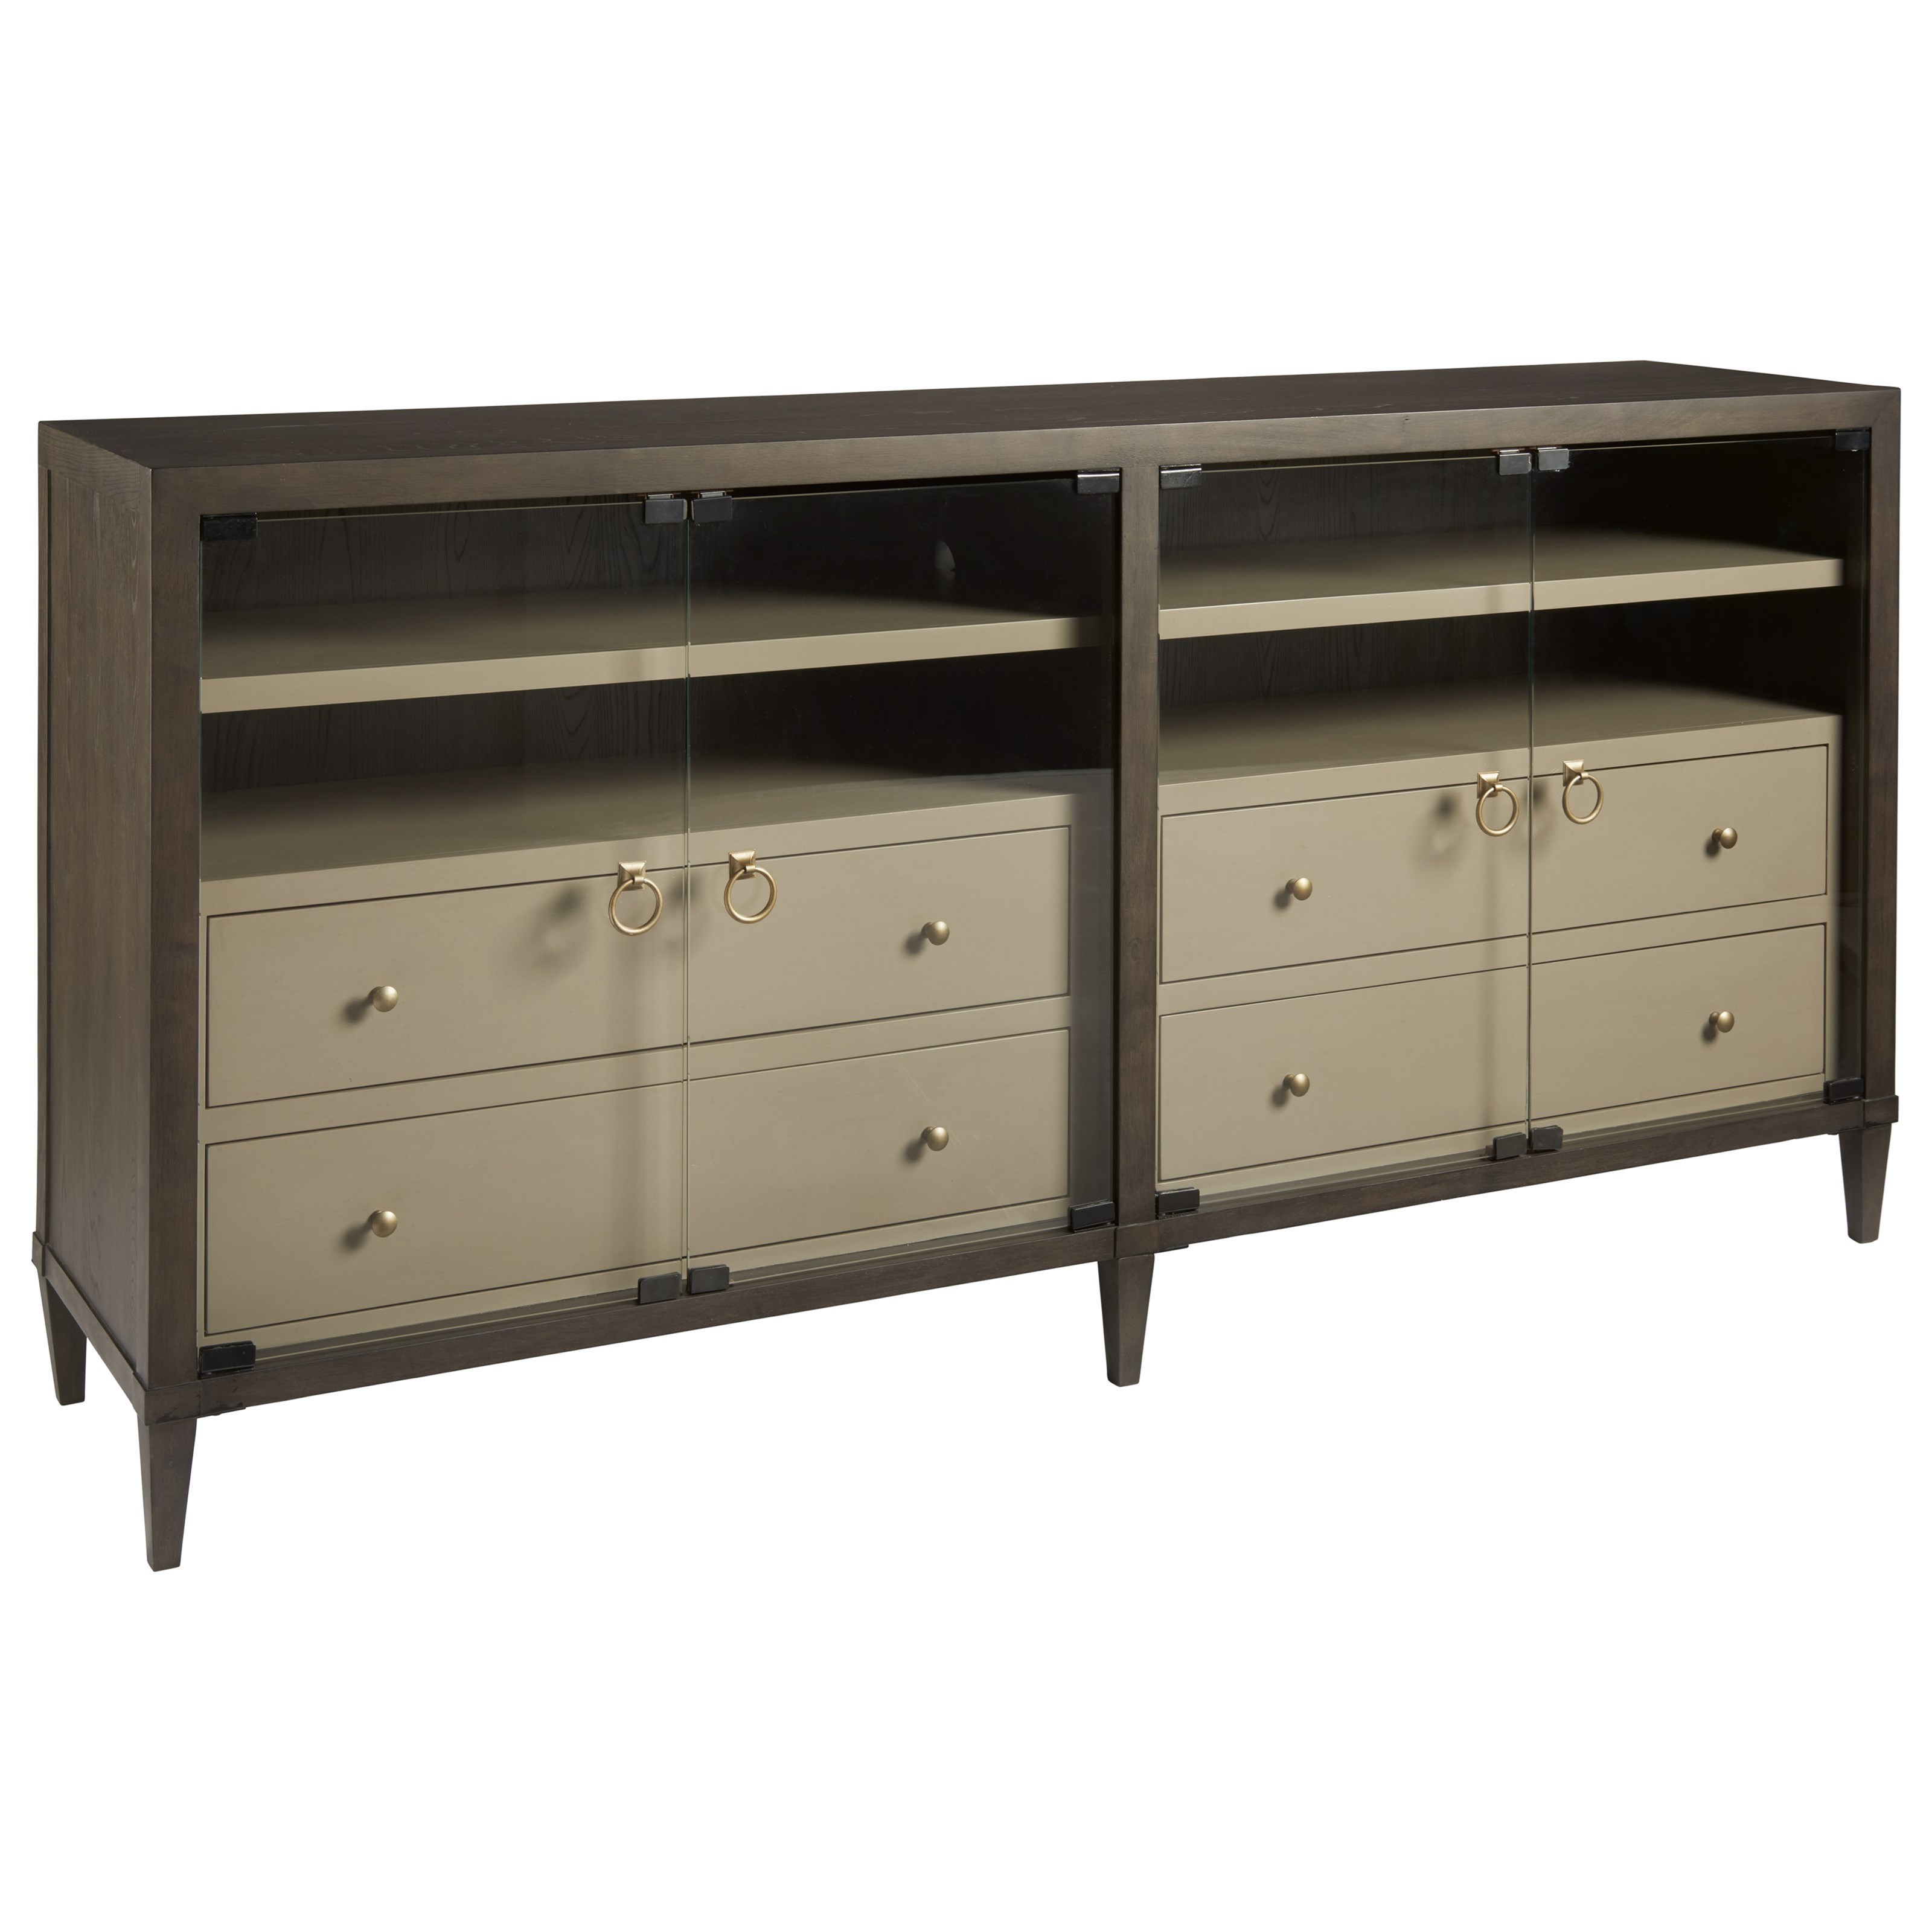 Soliloquy Entertainment Console by Universal at Baer's Furniture